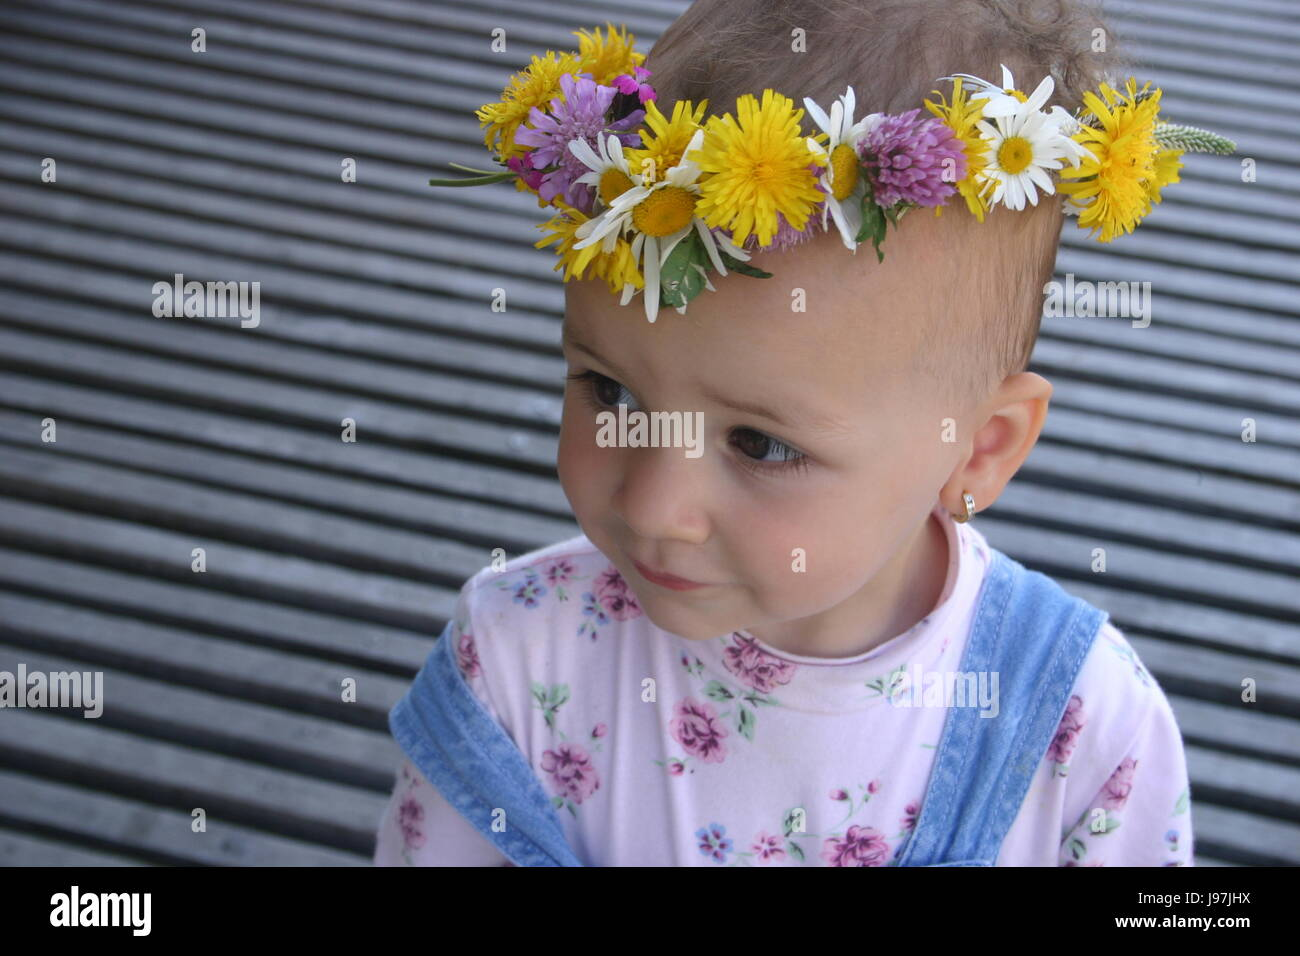 Portrait of little girl wearing a natural flower crown stock photo portrait of little girl wearing a natural flower crown izmirmasajfo